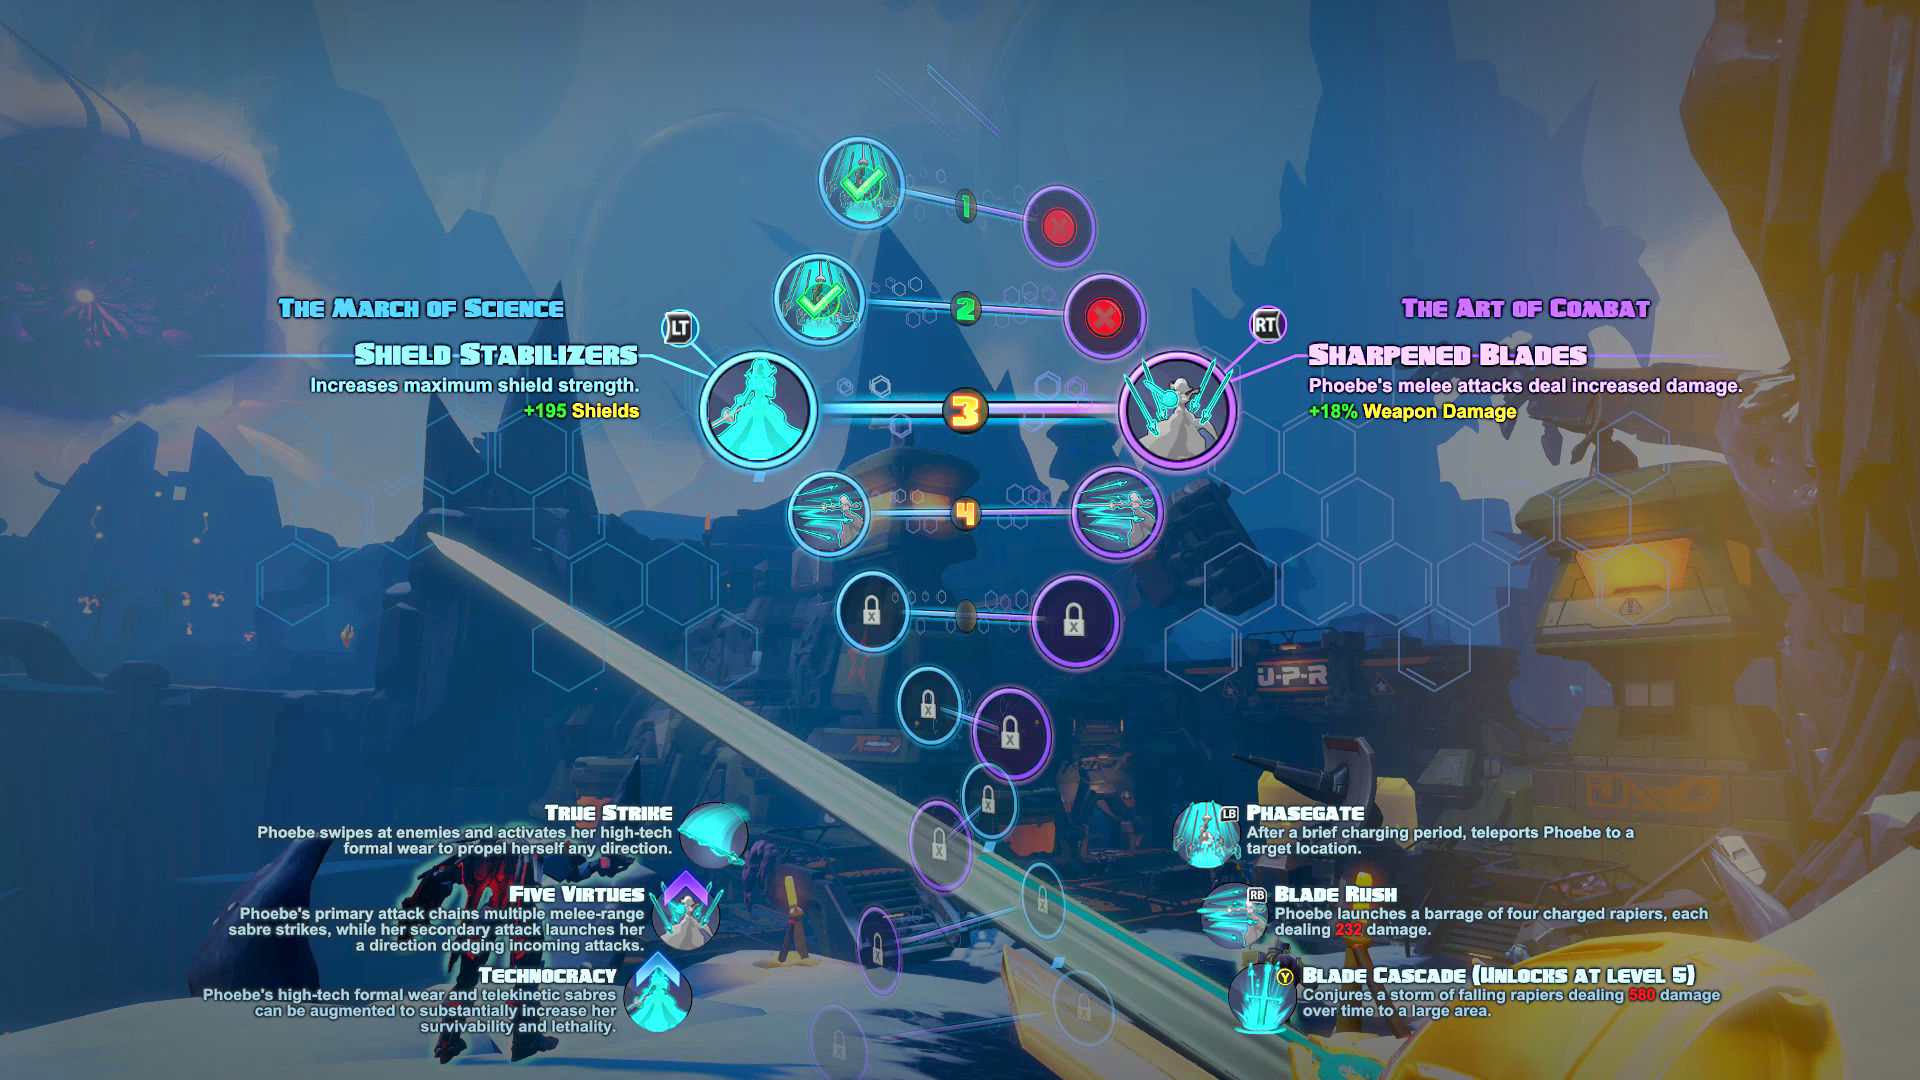 Battleborn Is A Collection Of Cool Ideas That Never Quite Gel battleborn open beta blends familiar fps and moba elements to deliver a fresh new gamepl 937237